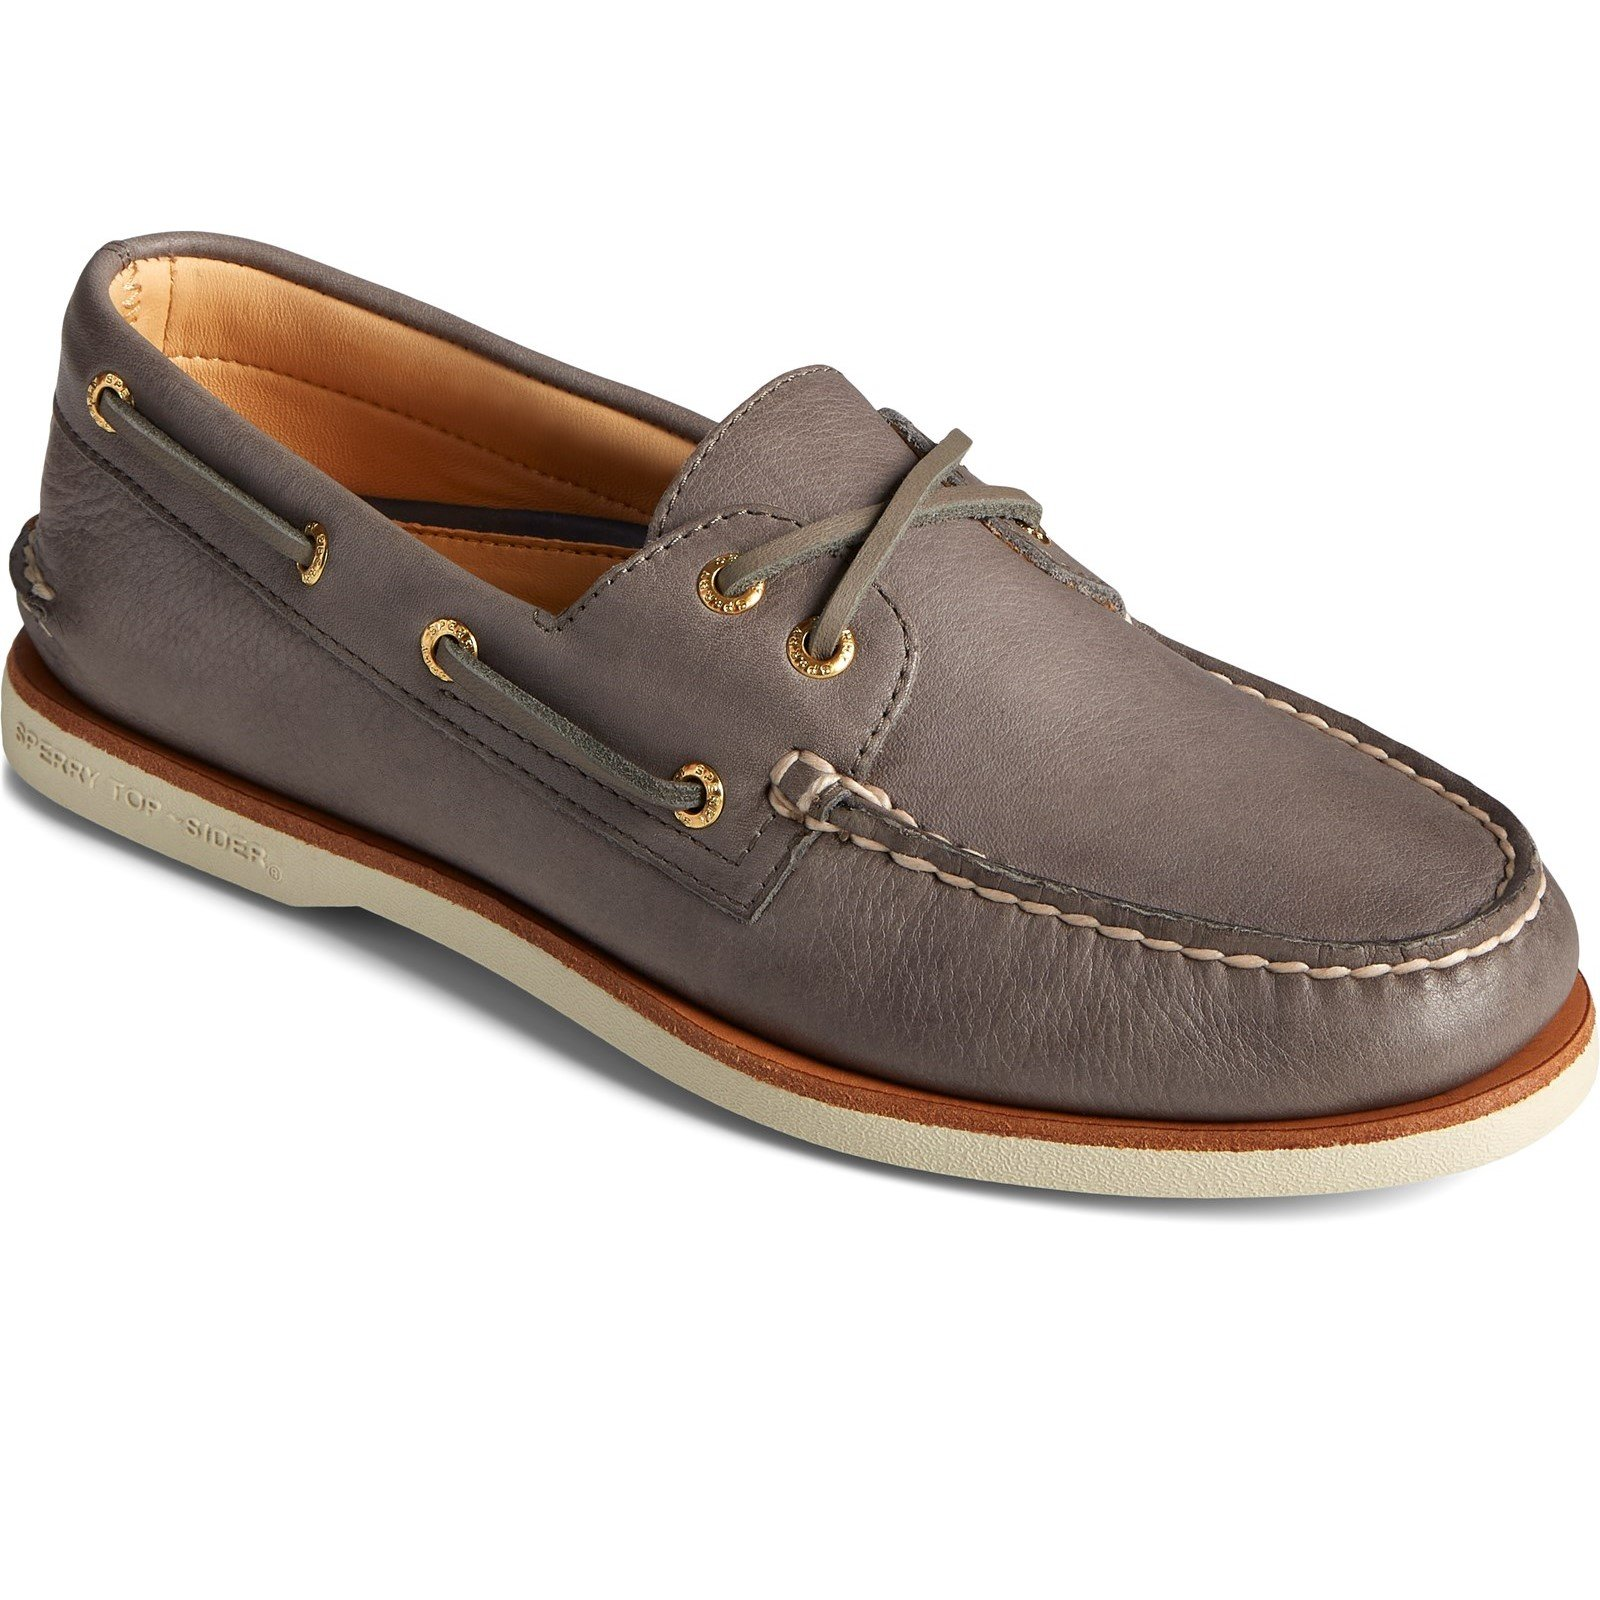 Sperry Men's A/O 2-Eye Boat Shoe Various Colours 32926 - Charcoal 8